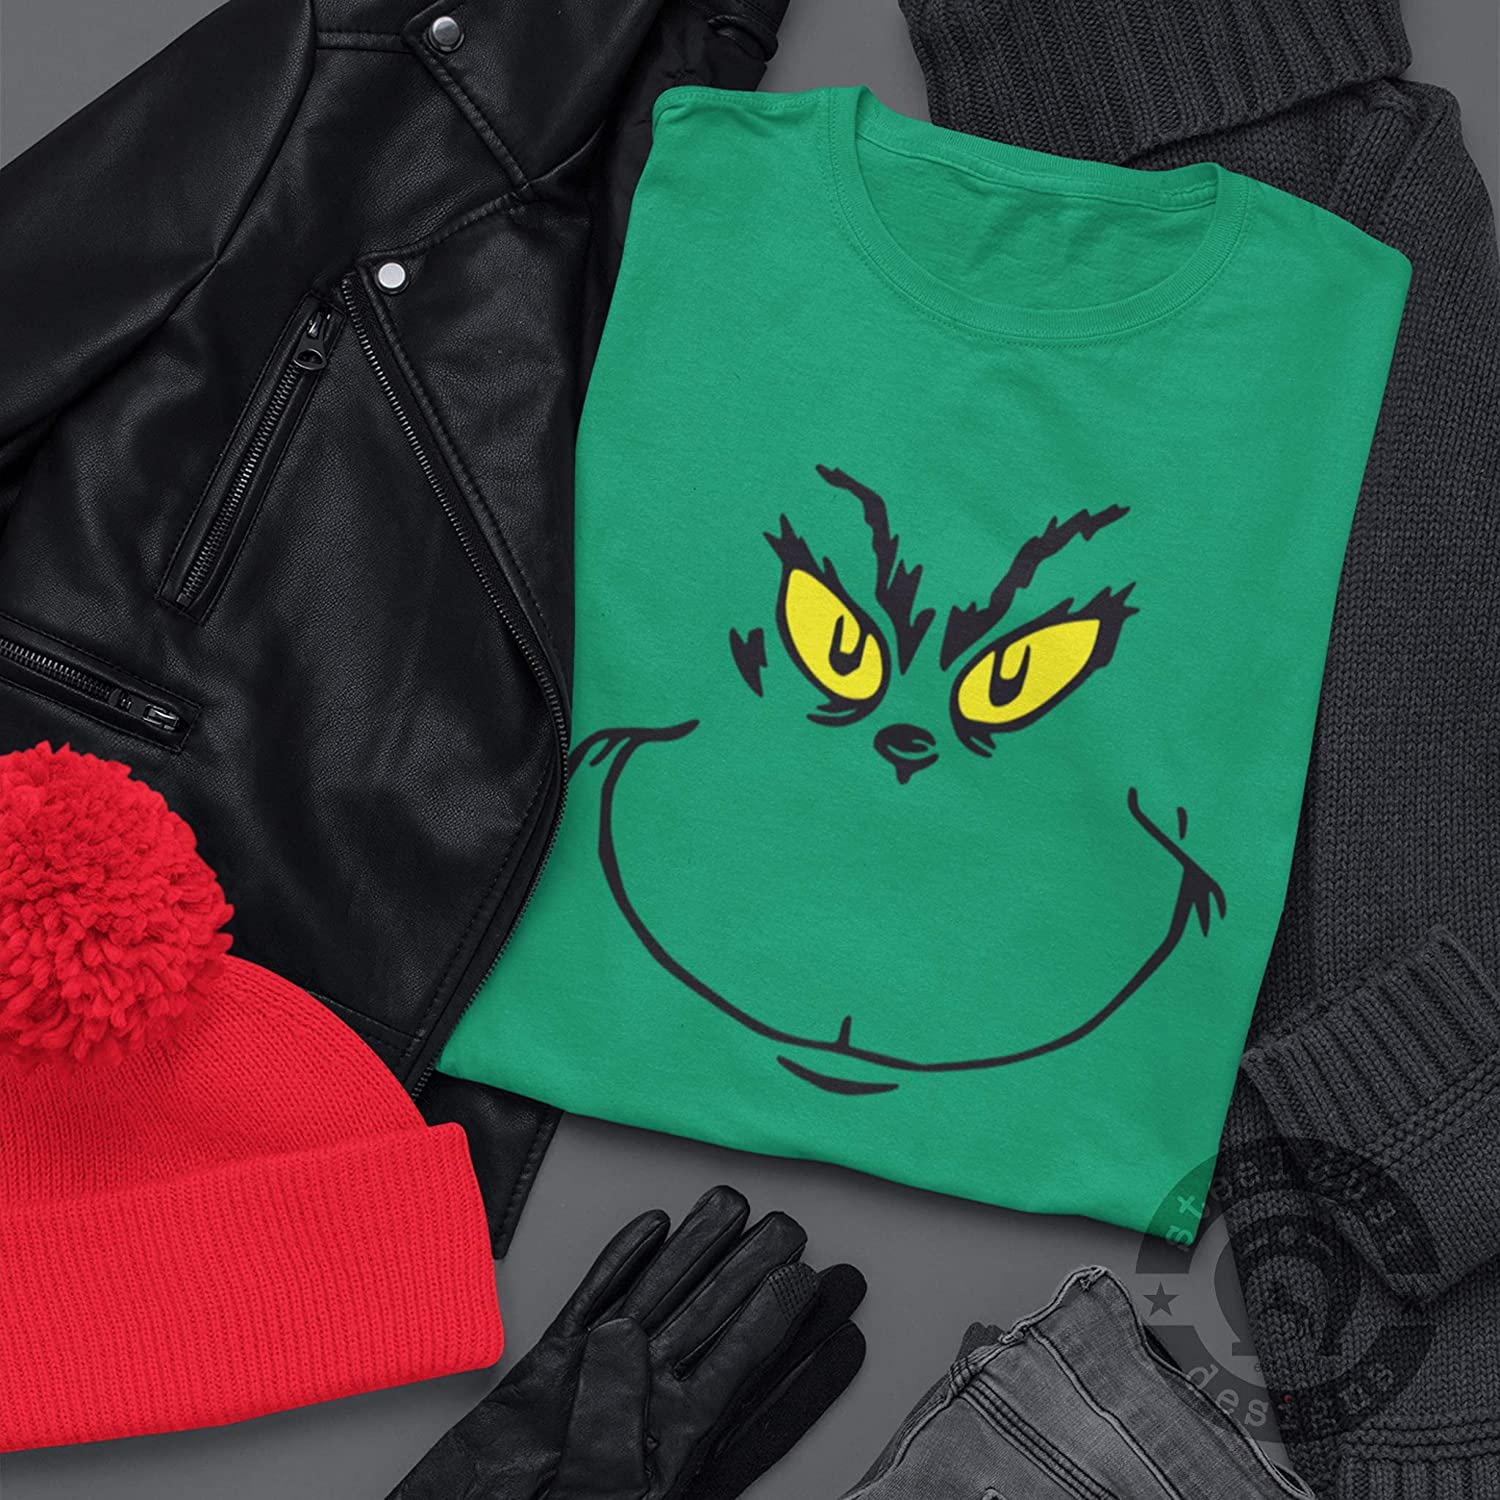 Amazon.com: Grinch Shirt, Grinch Christmas Shirt, Grinch ...